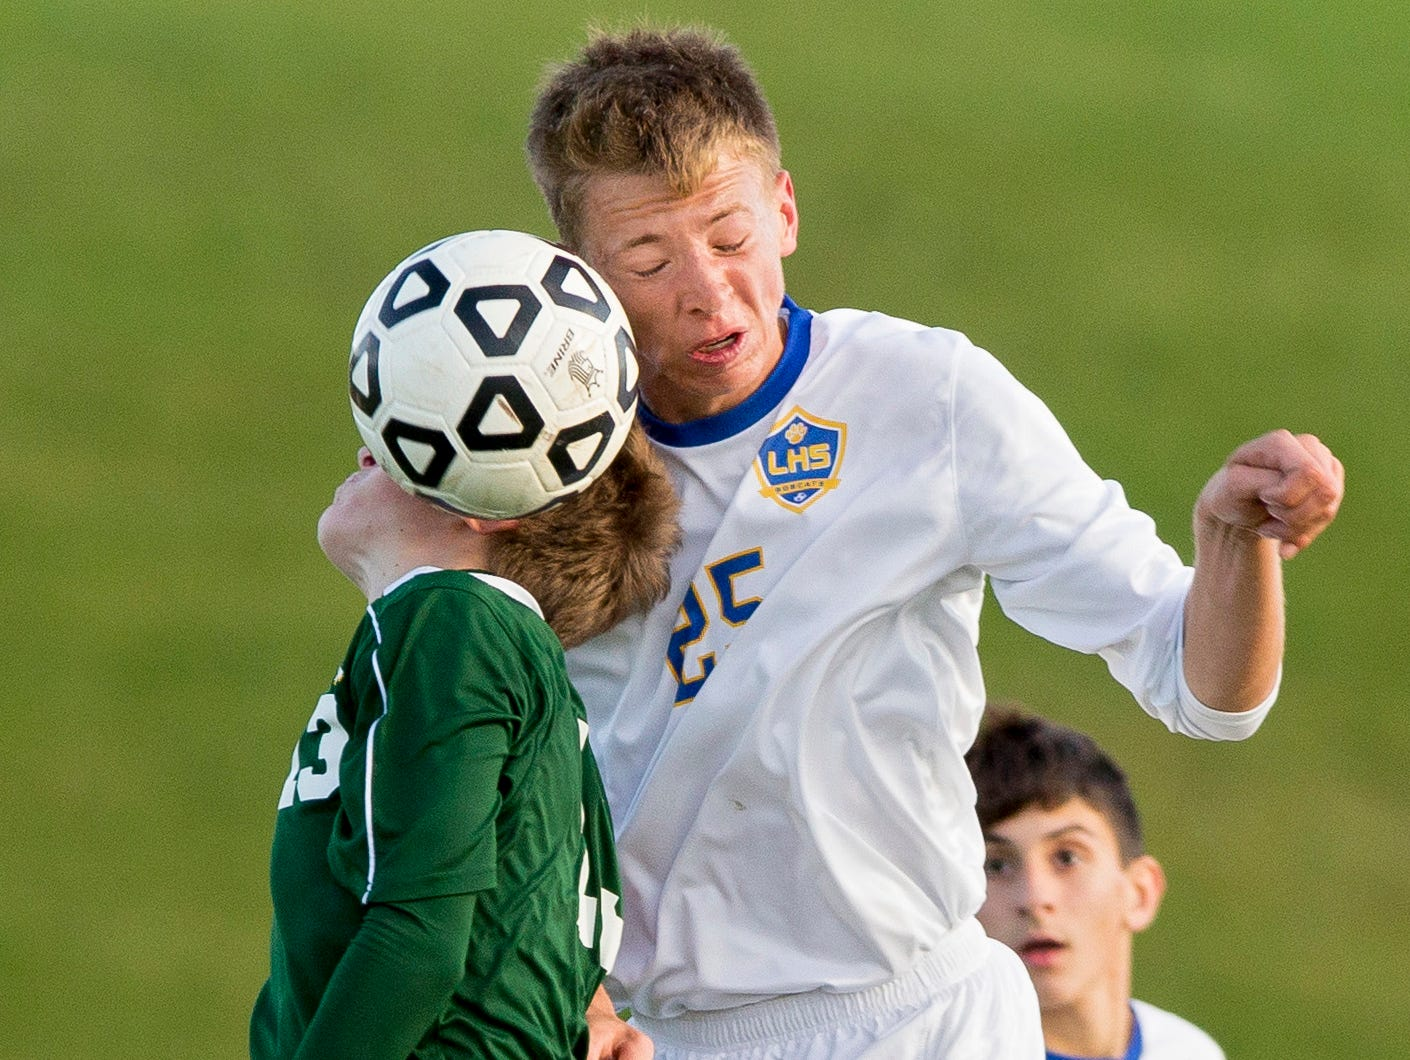 Greene's Spencer Klumpp, left, and Lansing's Karsten Zuidema fight for the ball as Lansing's Kyle Button, background watches Thursday during Lansing's 2-1 overtime win in the Section 4 Class C semifinals at Lansing.